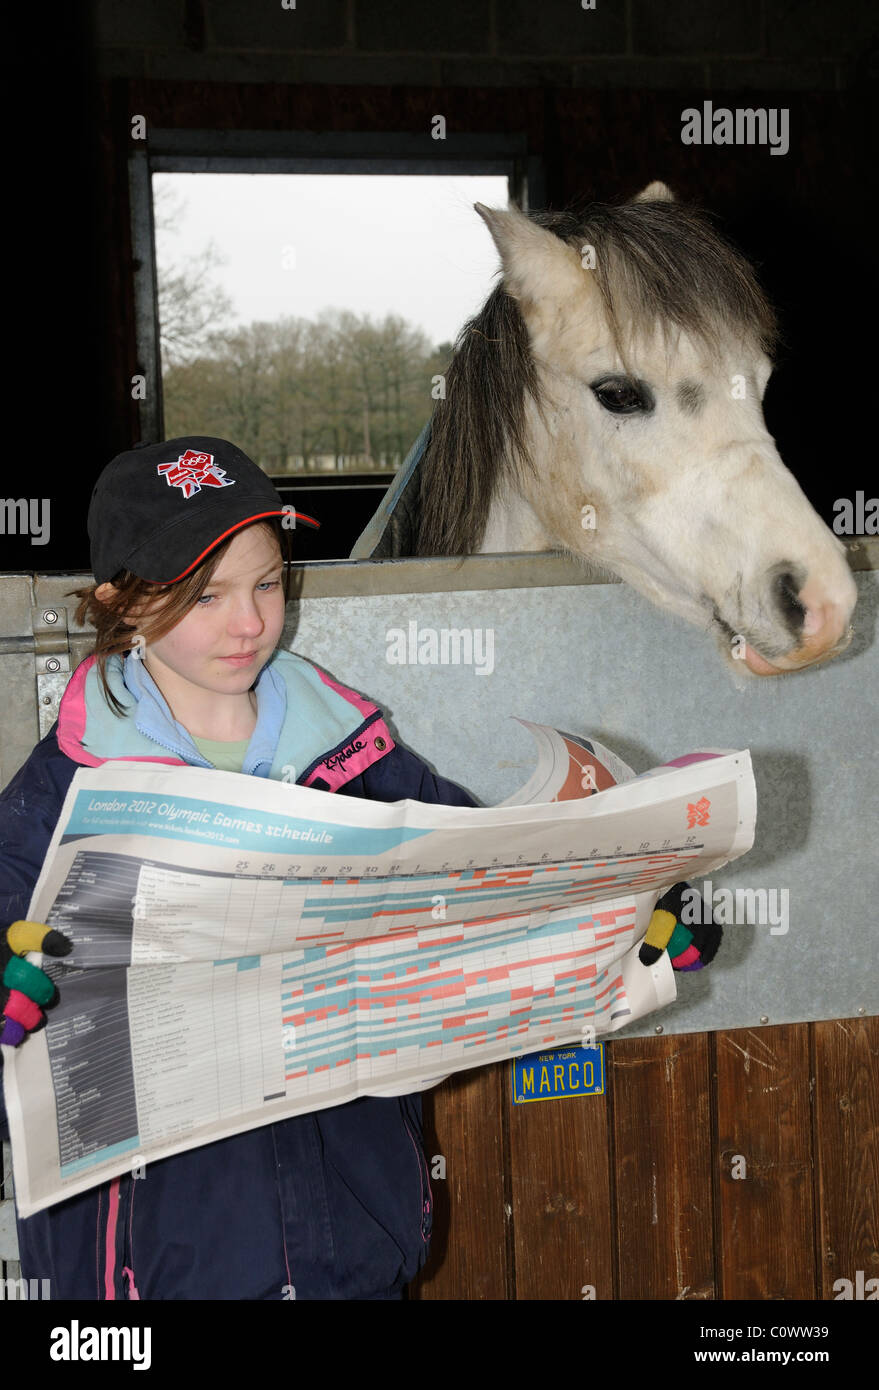 Pony Stable Stock Photos Amp Pony Stable Stock Images Alamy